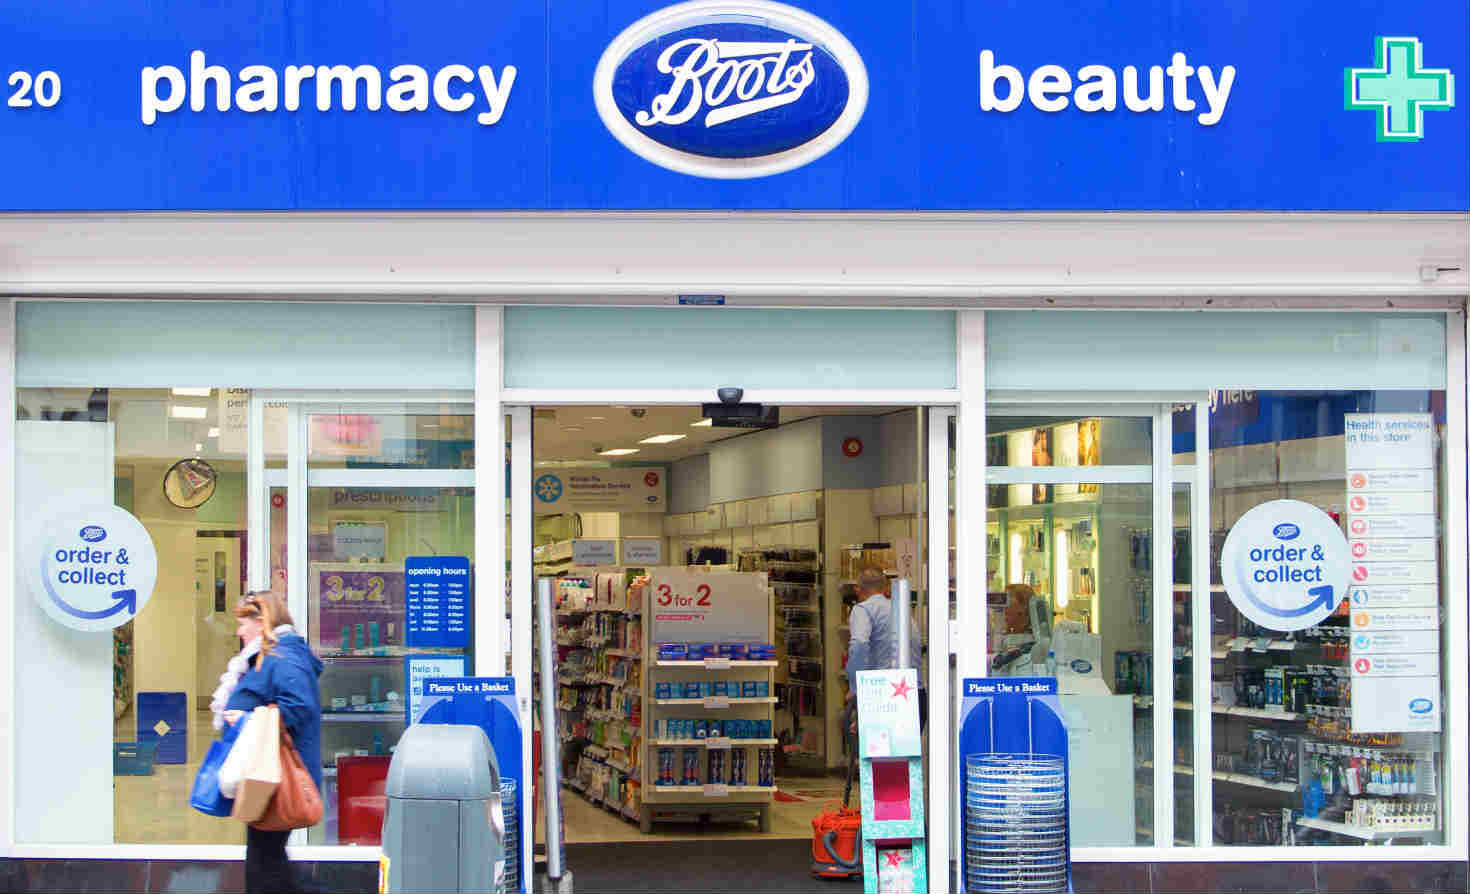 Boots storefront in London